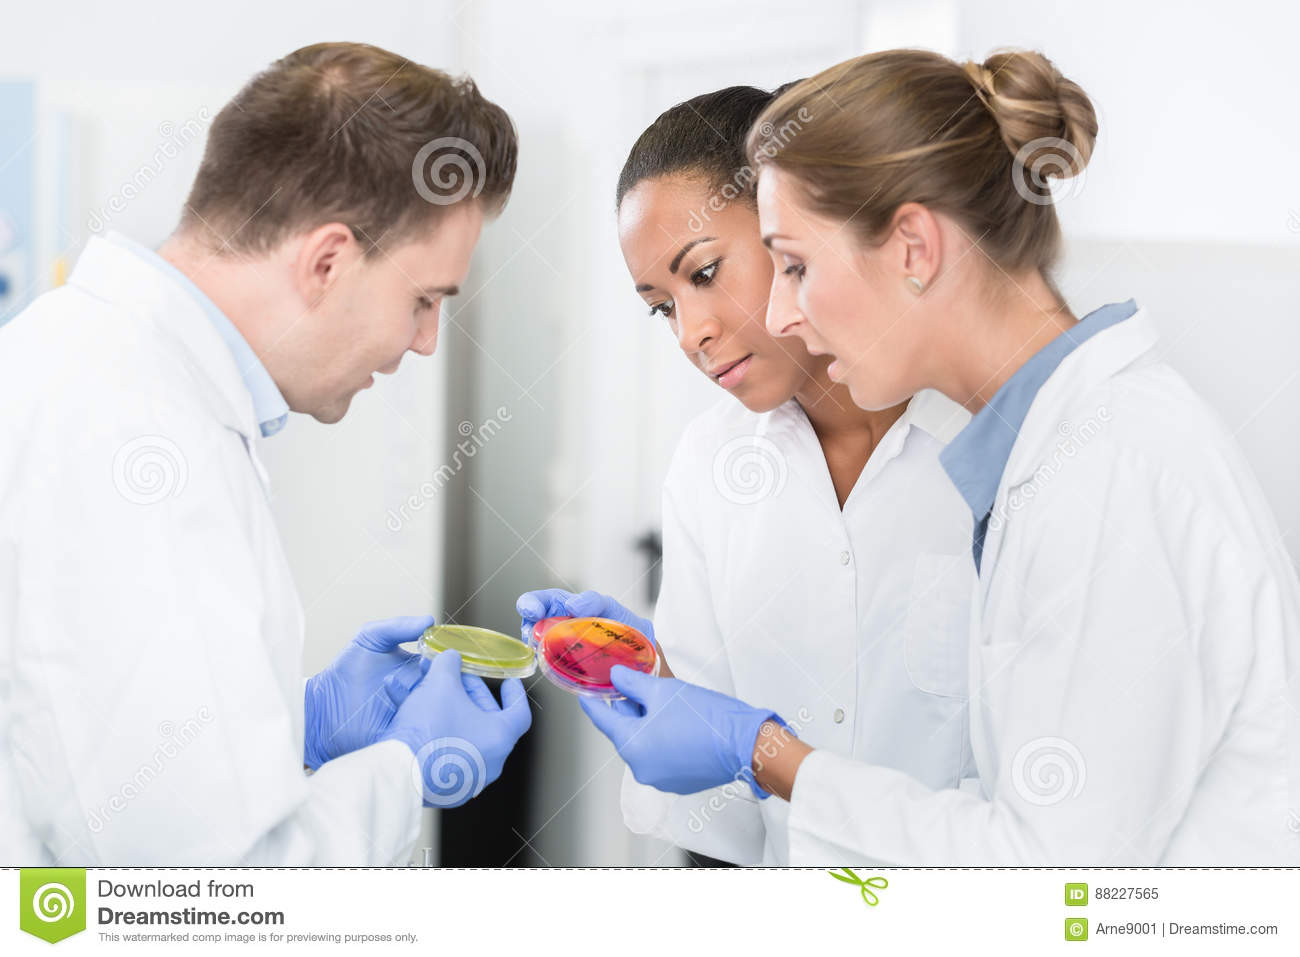 Group of food laboratory researchers comparing bacteria cultures